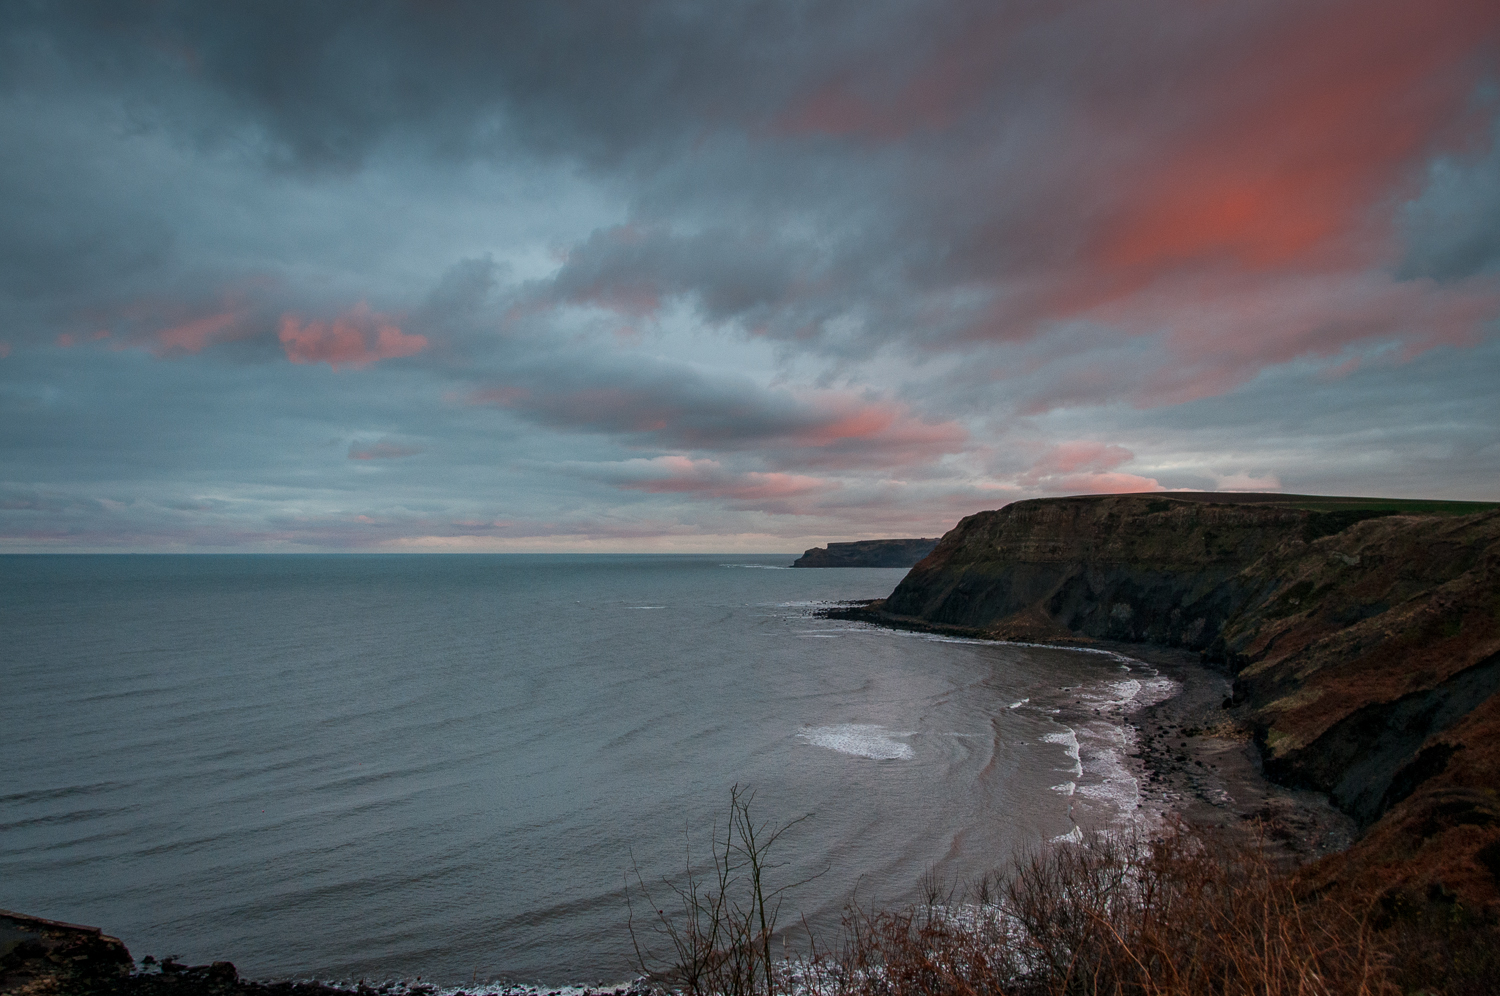 Port Mulgrave Bay